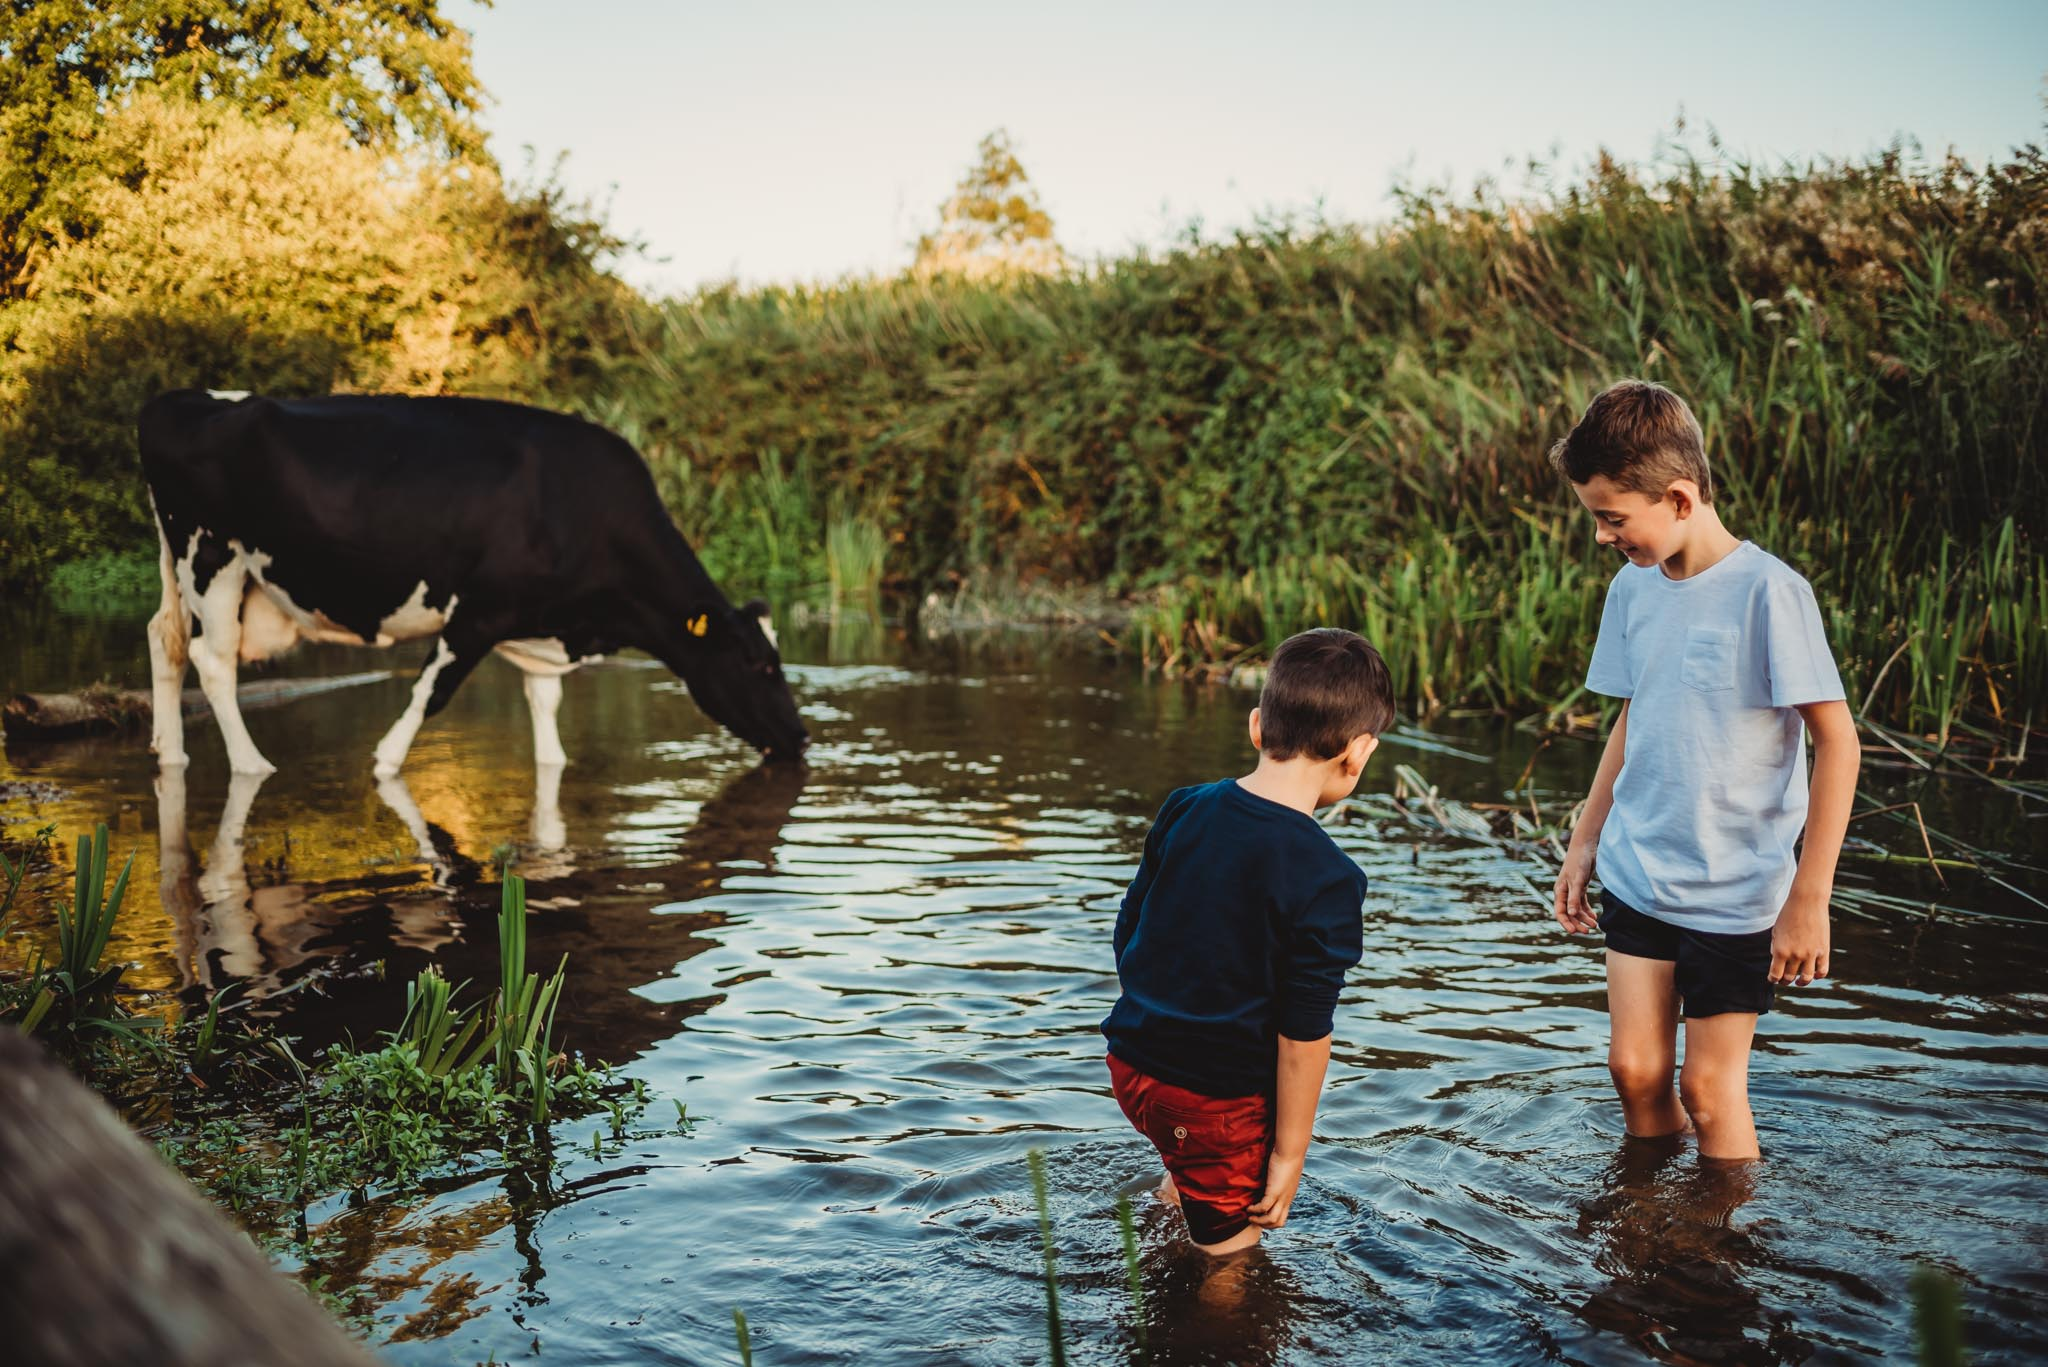 two boys playing in a river whilst a cow drinks next to them